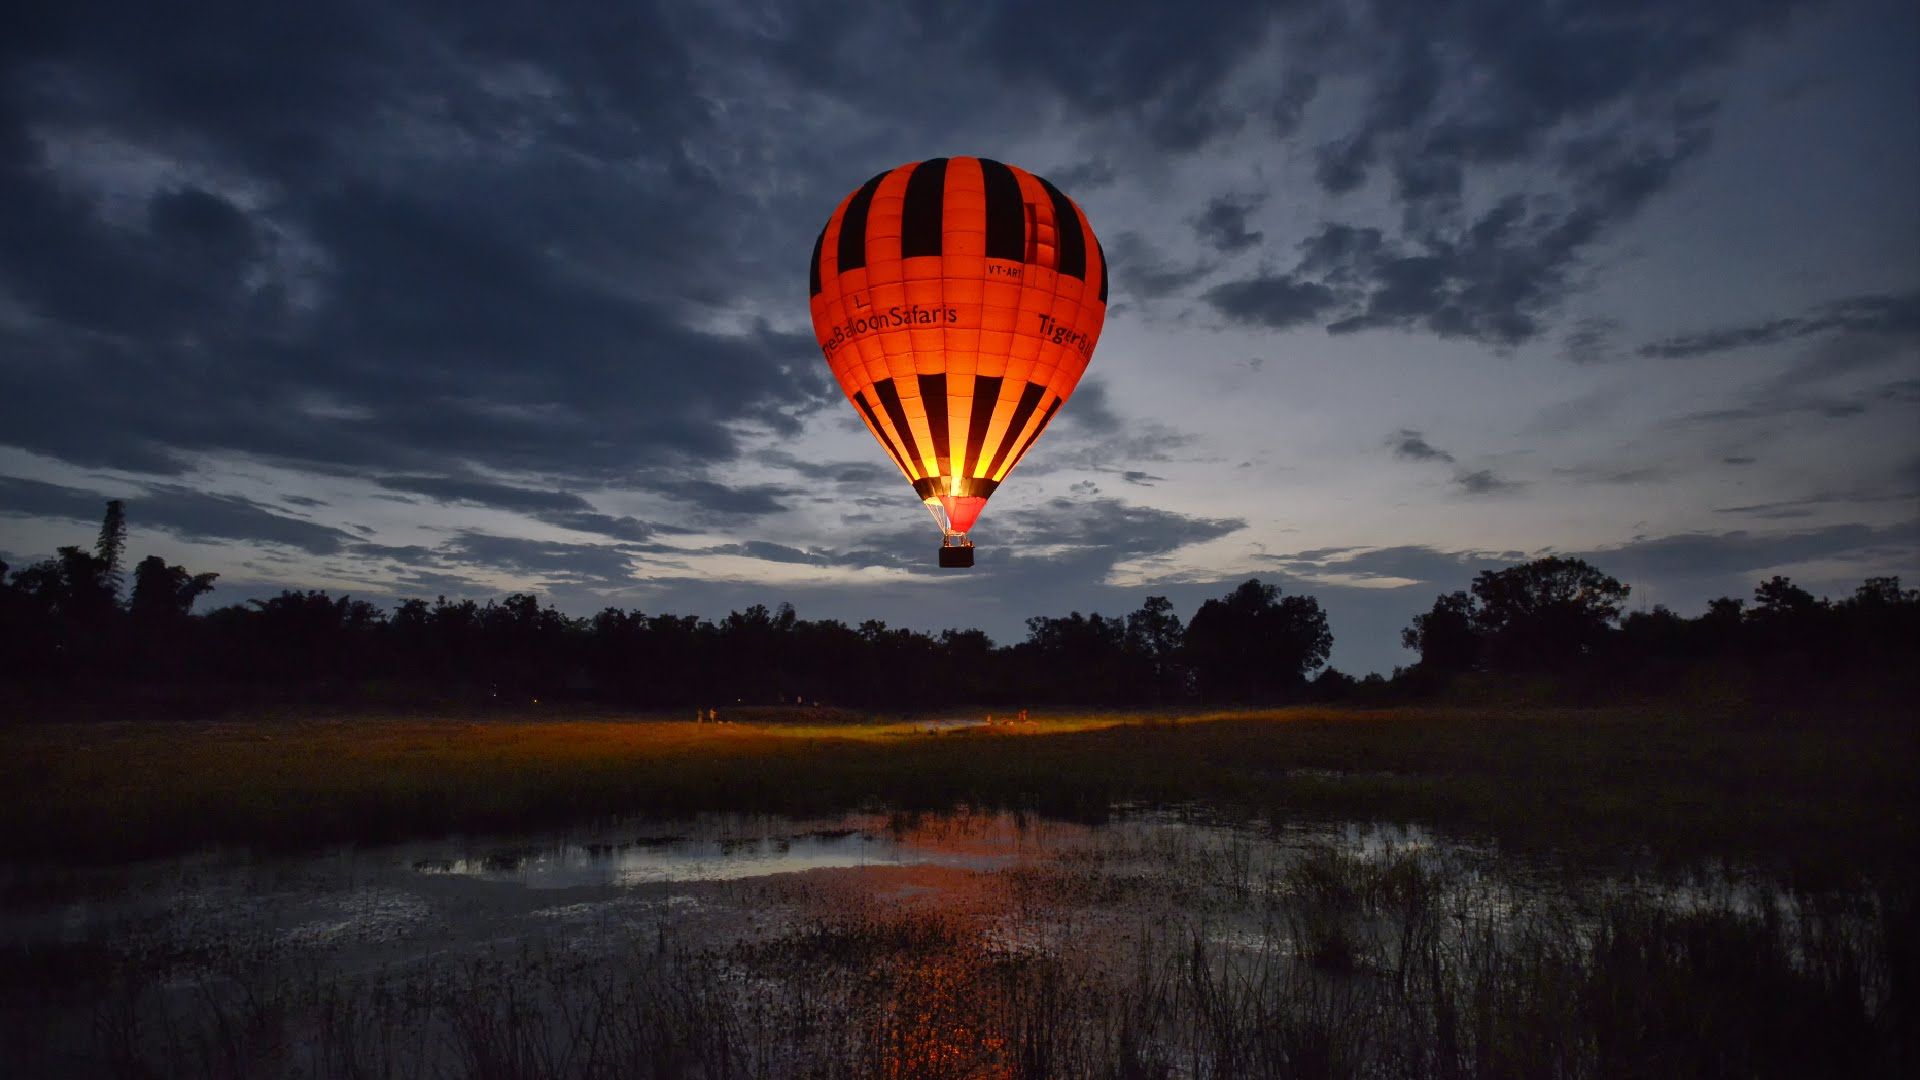 Eyes in the Skies: Hot Air Balloons in Delhi NCR  Tiger Balloon Safaris  Here's another Hot air balloon in Rajasthan. Approved by the Director General of Civil Aviation, they comply with the top level aviation authority in India and have world class standards.  